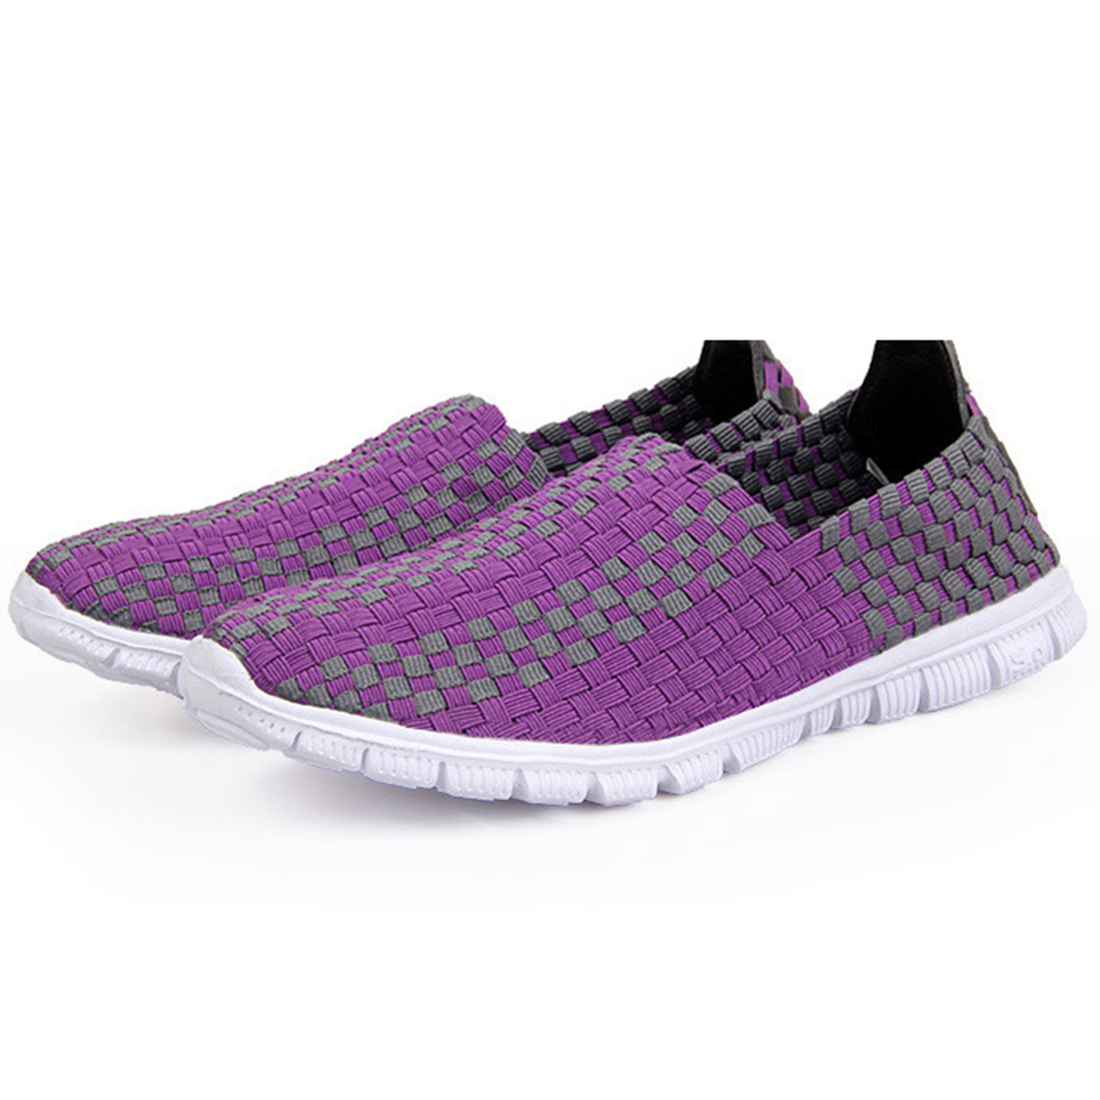 New Womens Lady Shape-Up Elastic Braided Walking Fitness Athletic Slip on Shoes